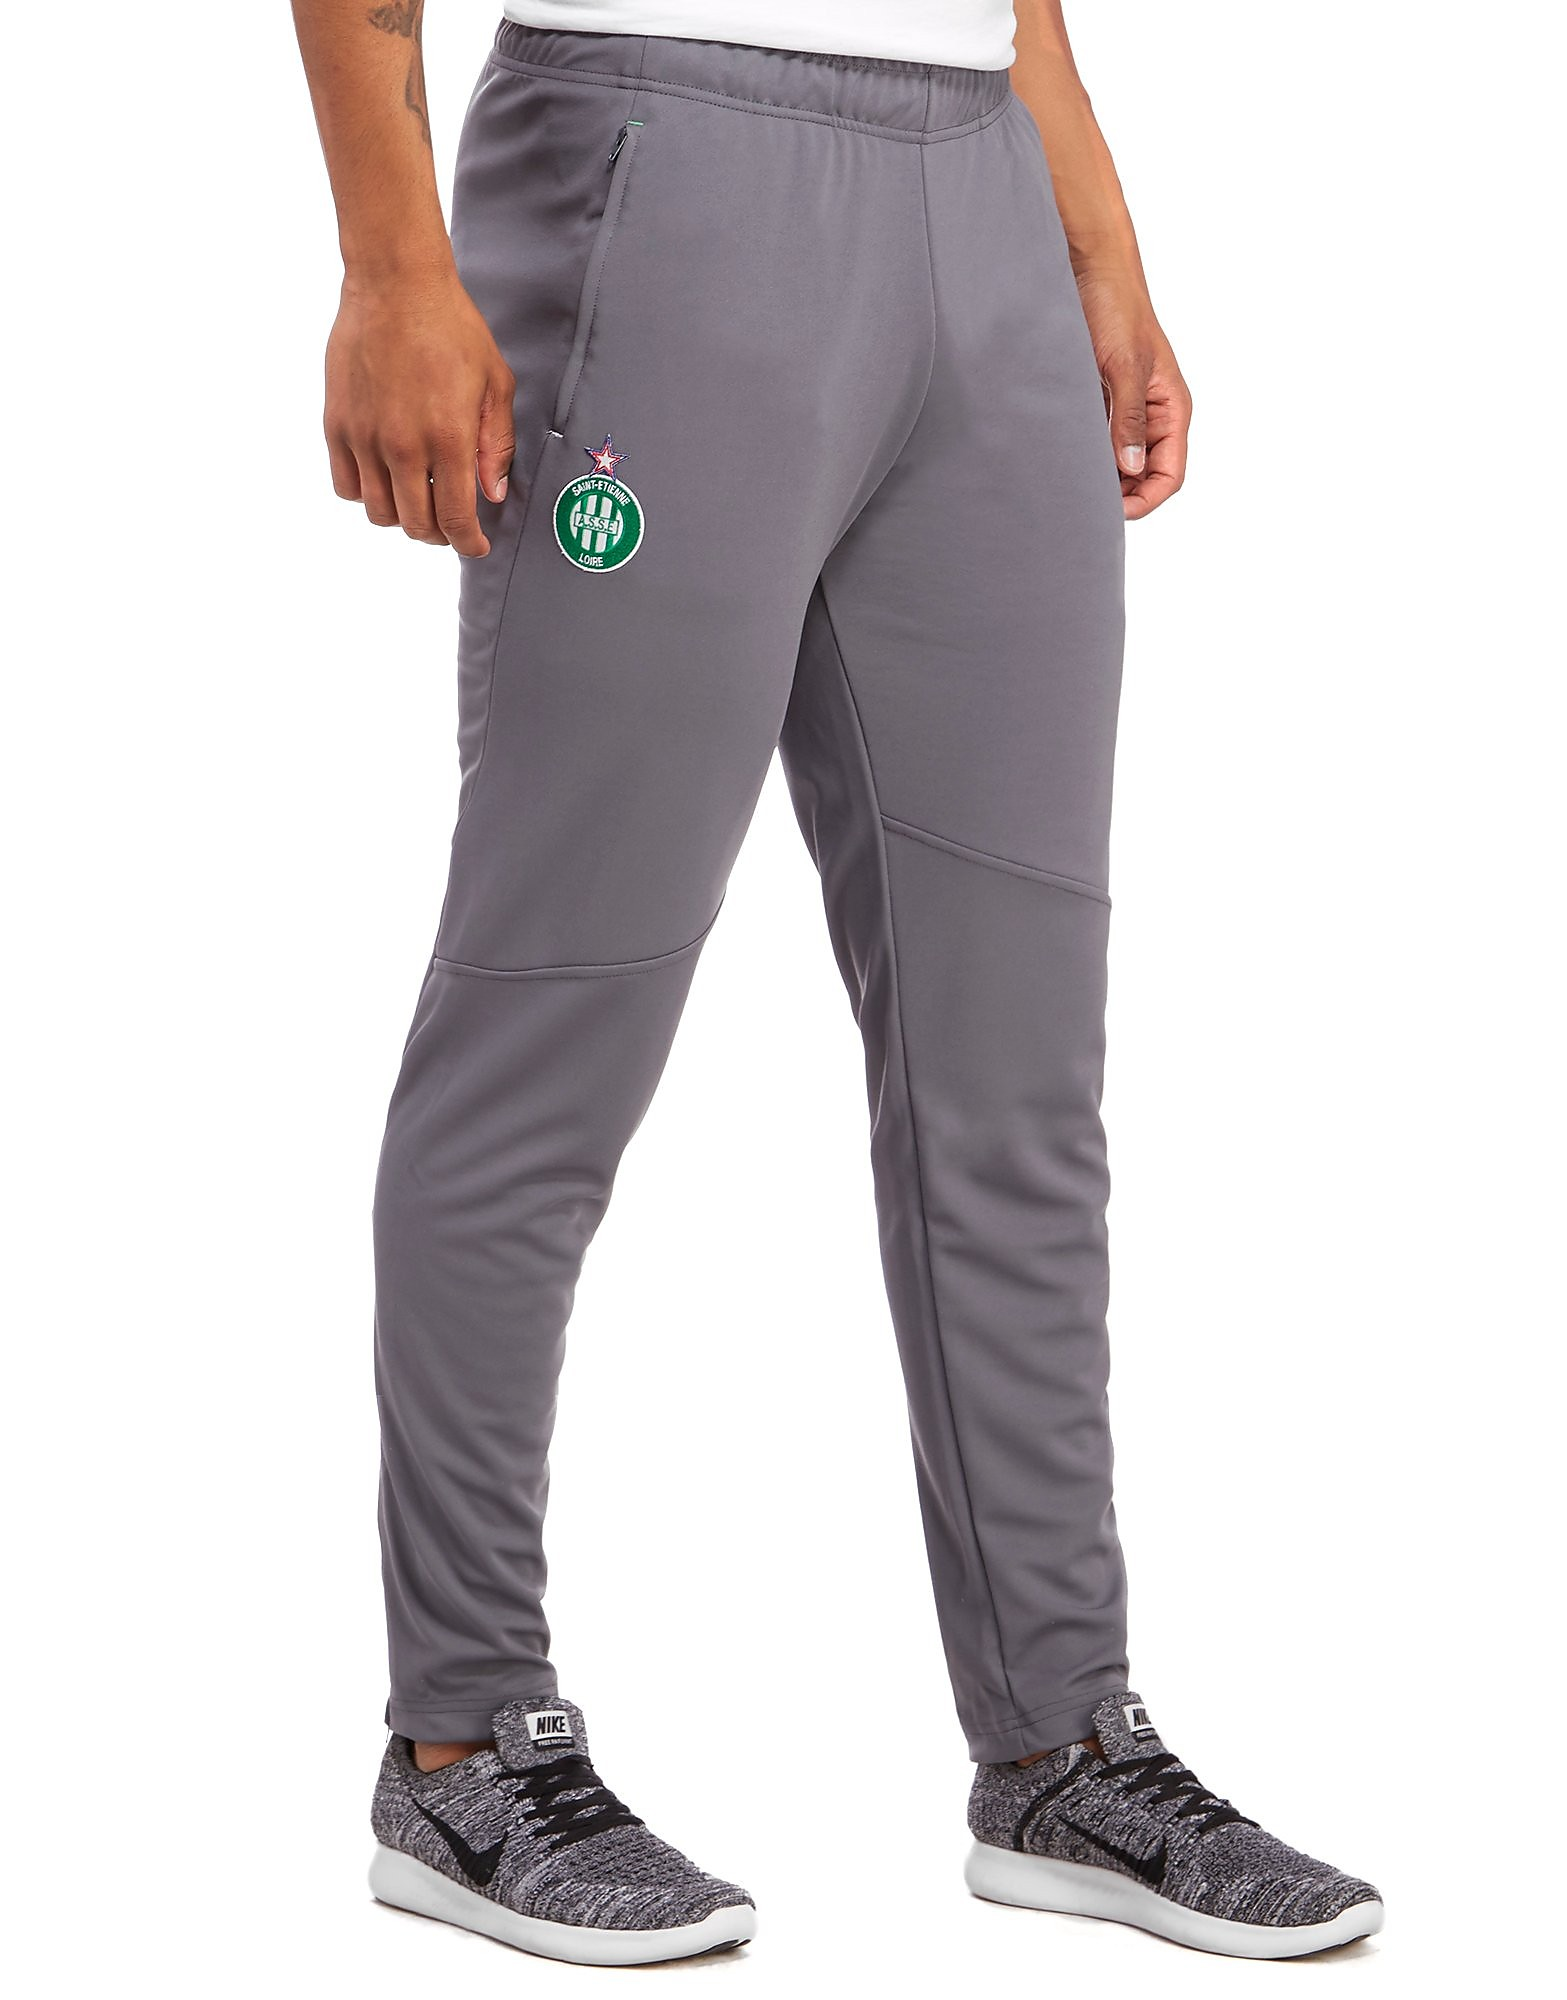 Le Coq Sportif AS Saint Etienne Training Pants